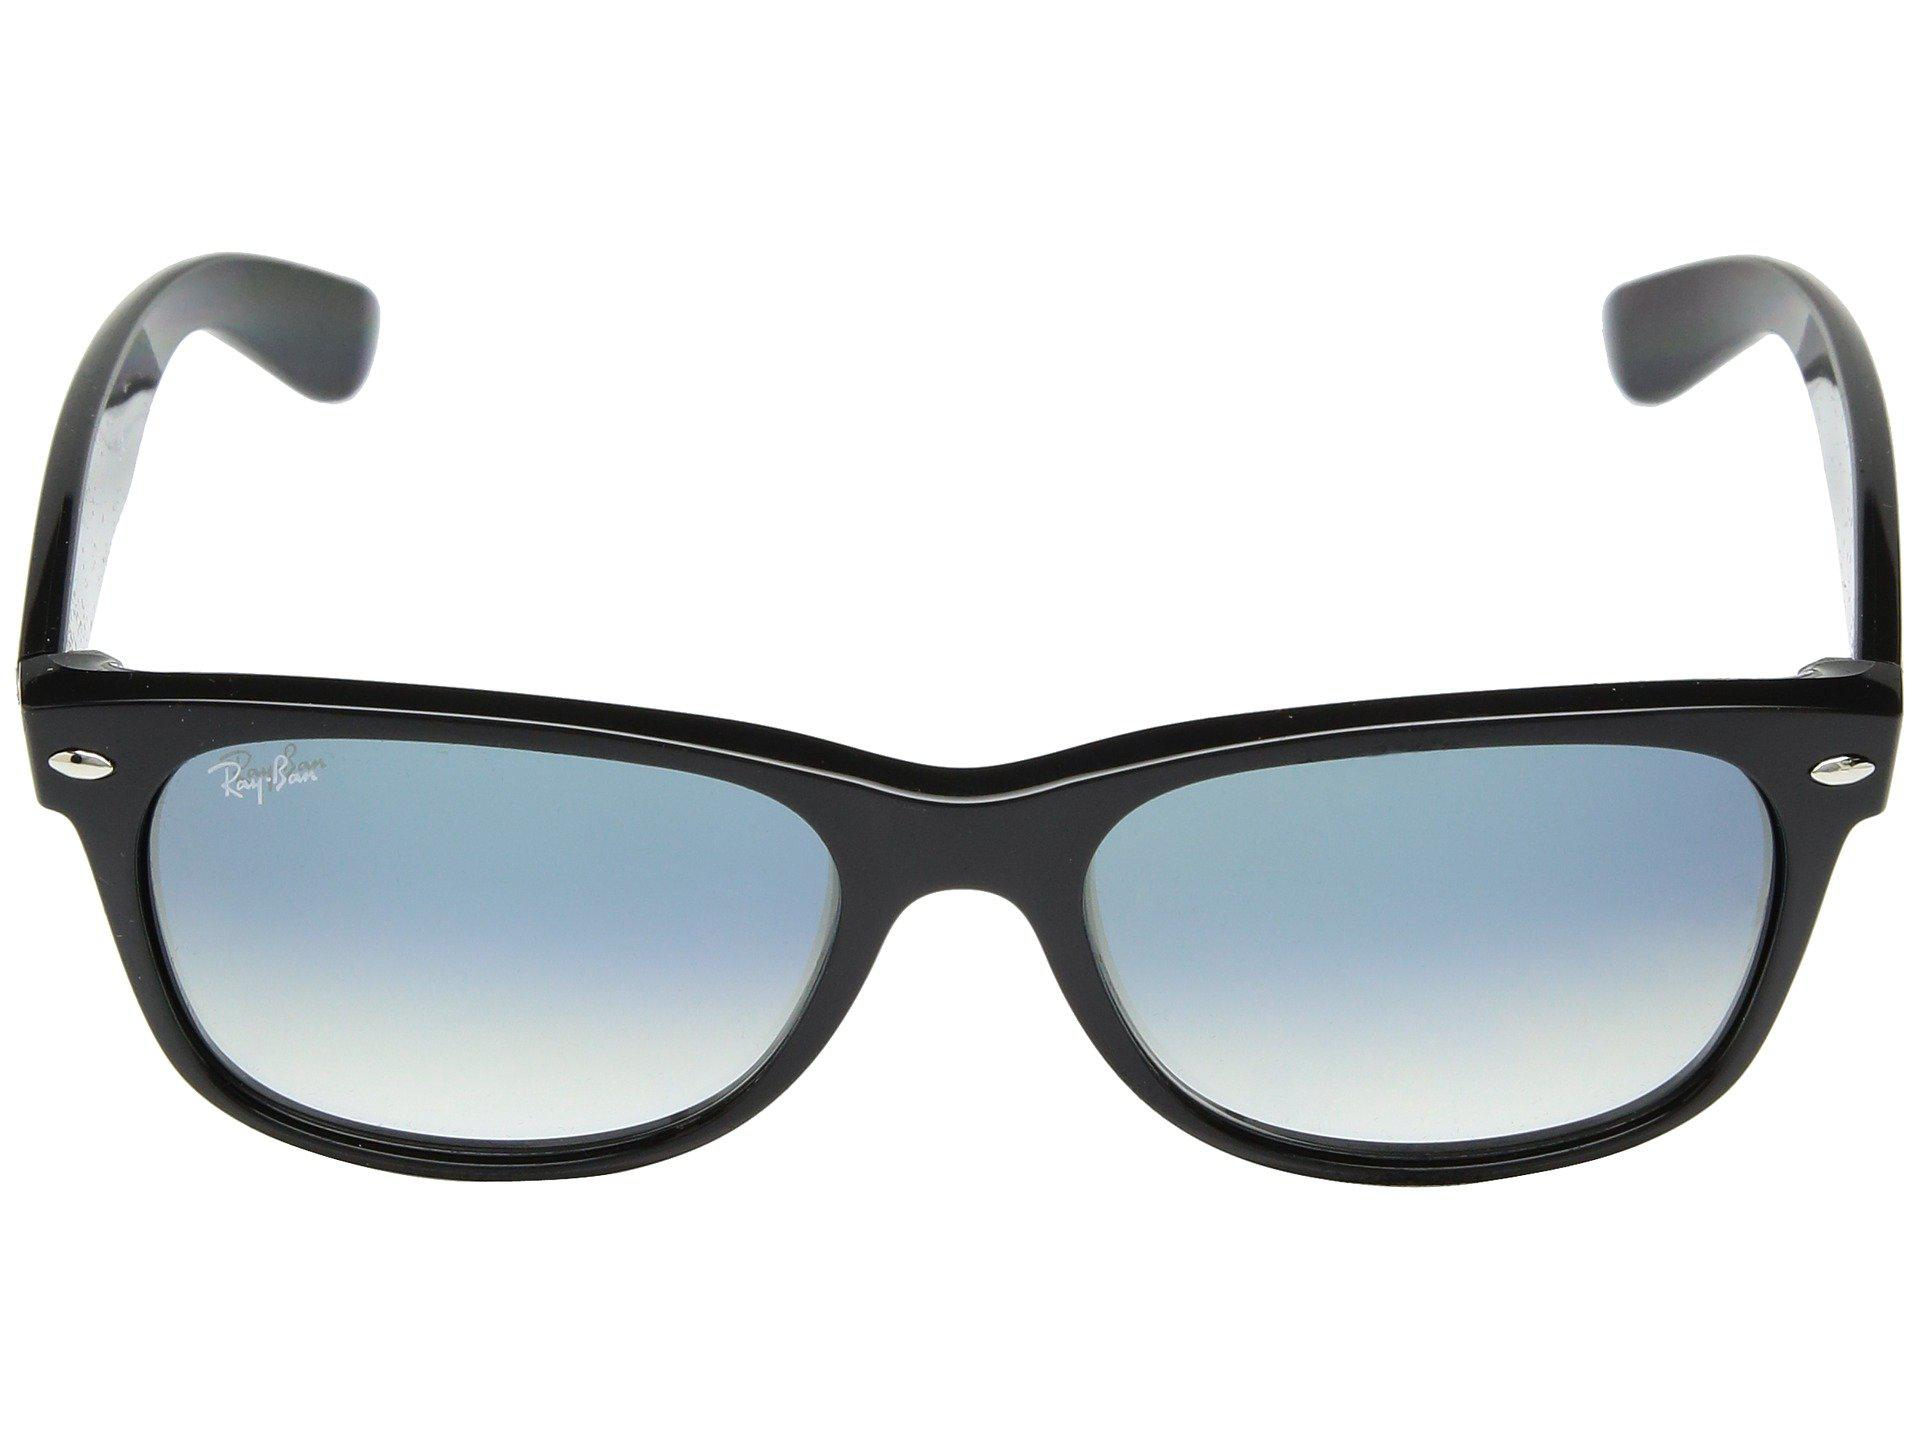 800e72df44d Ray-Ban - Black Rb2132 New Wayfarer 52mm (top Brushed Gunmetal transparent).  View fullscreen